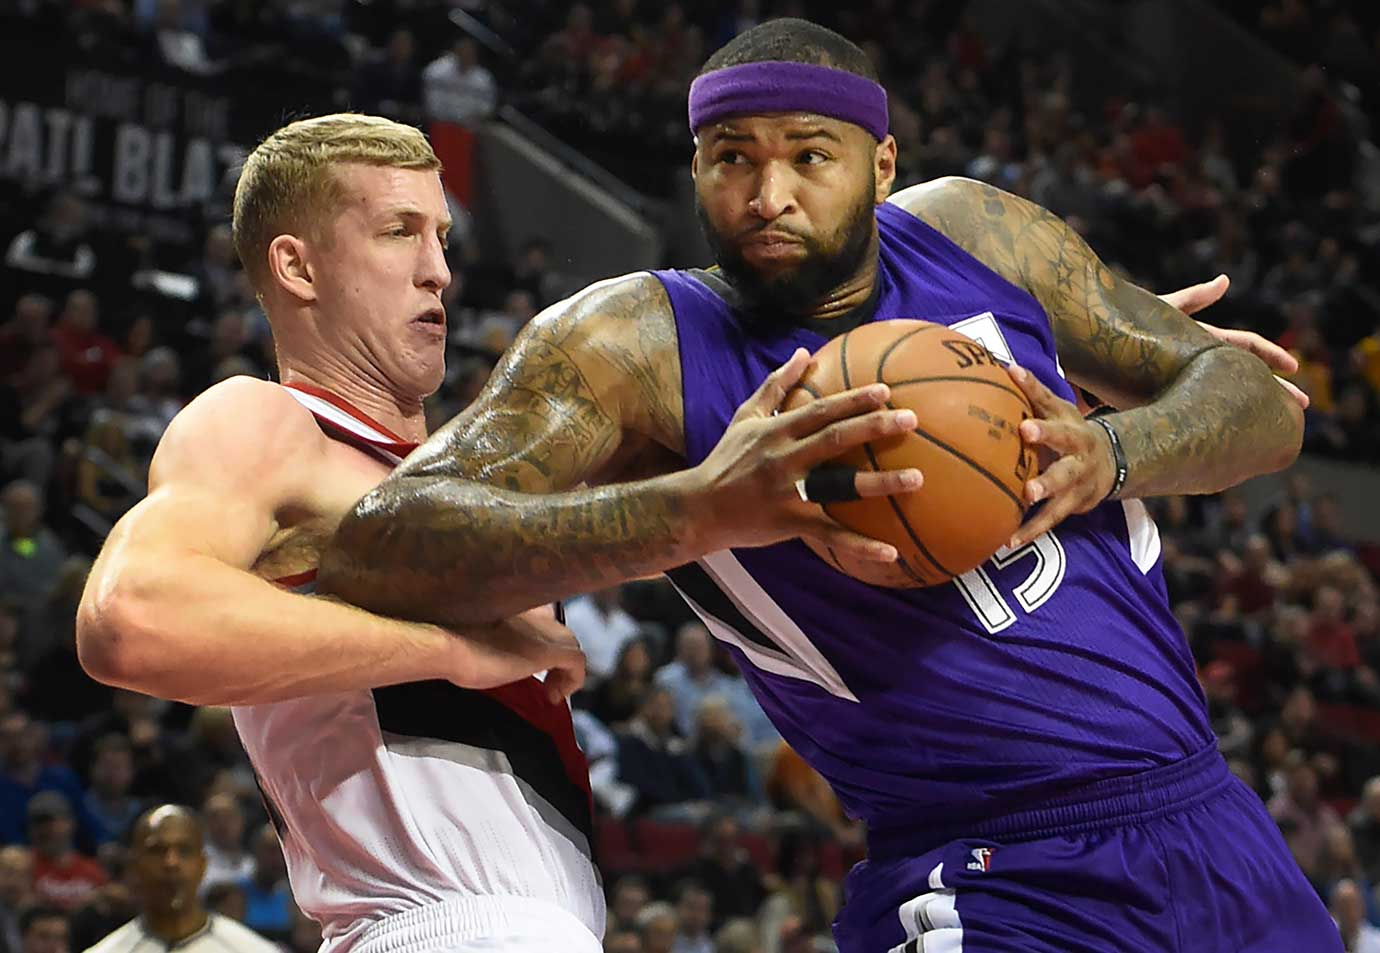 Sacramento Kings center DeMarcus Cousins drives to the basket on Portland Trail Blazers center Mason Plumlee in Portland, Ore.